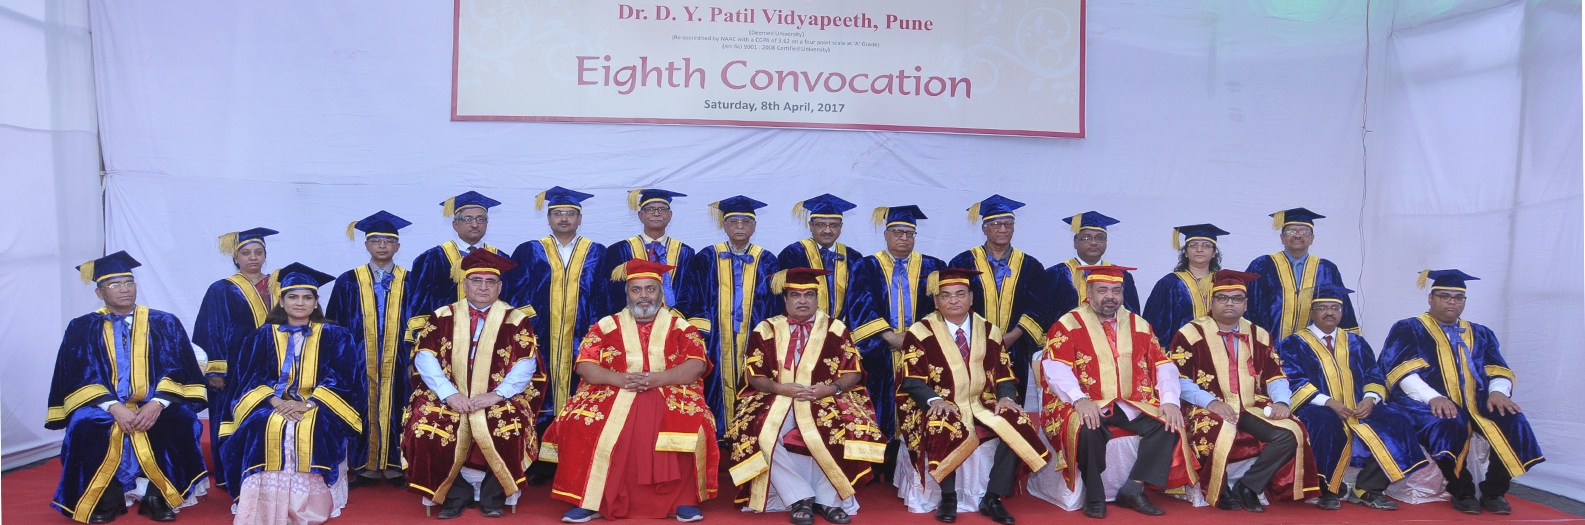 8th Convocation 2017